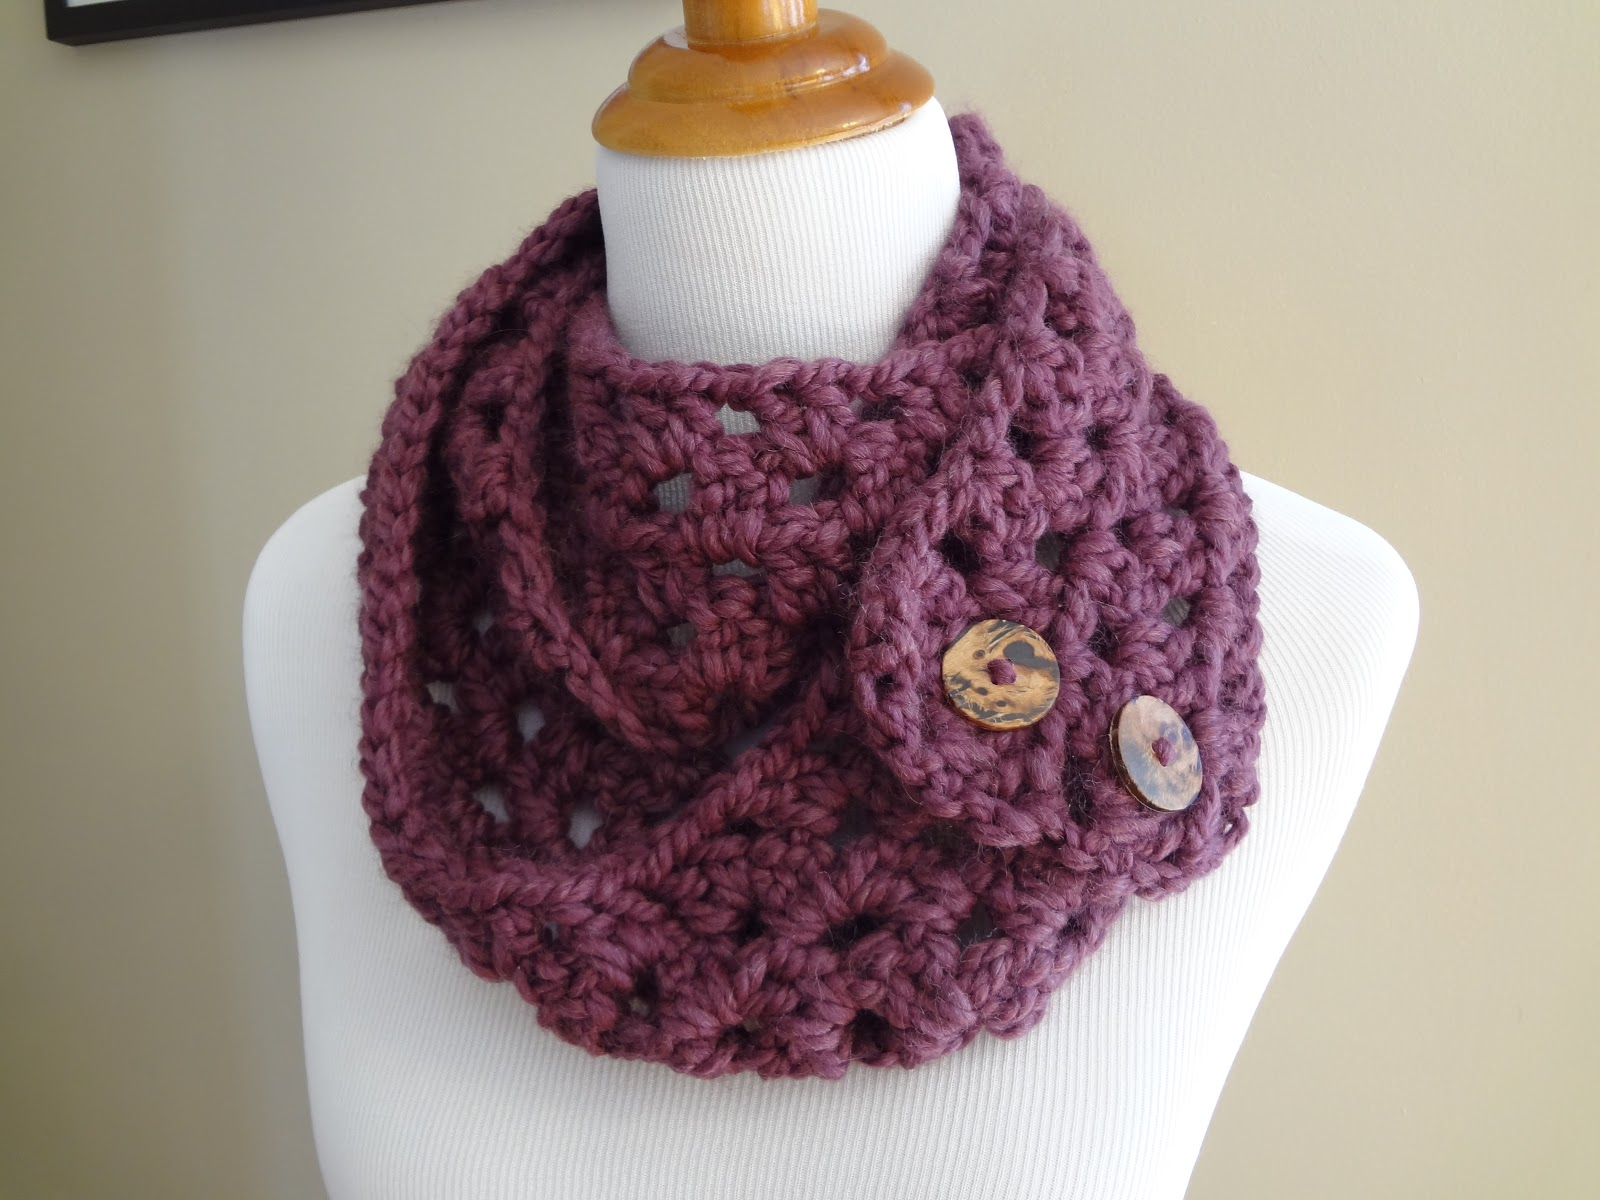 Crochet Scarf Pattern With Pictures : Fiber Flux: Free Crochet Pattern...Fiona Button Scarf!